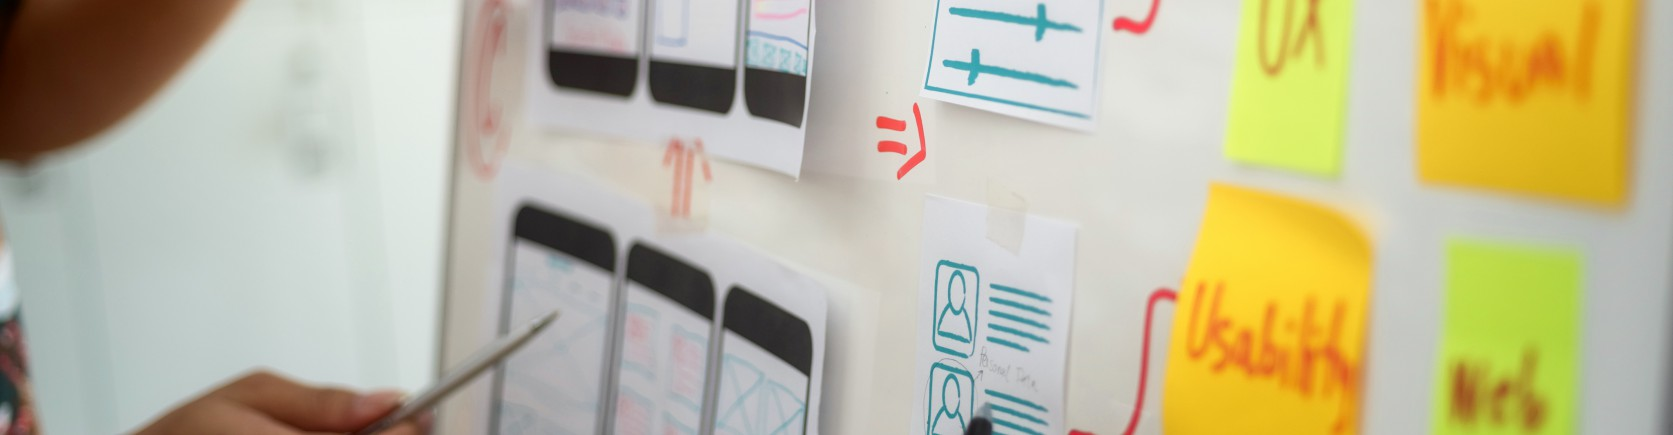 How wireframing saves time and money on software projects